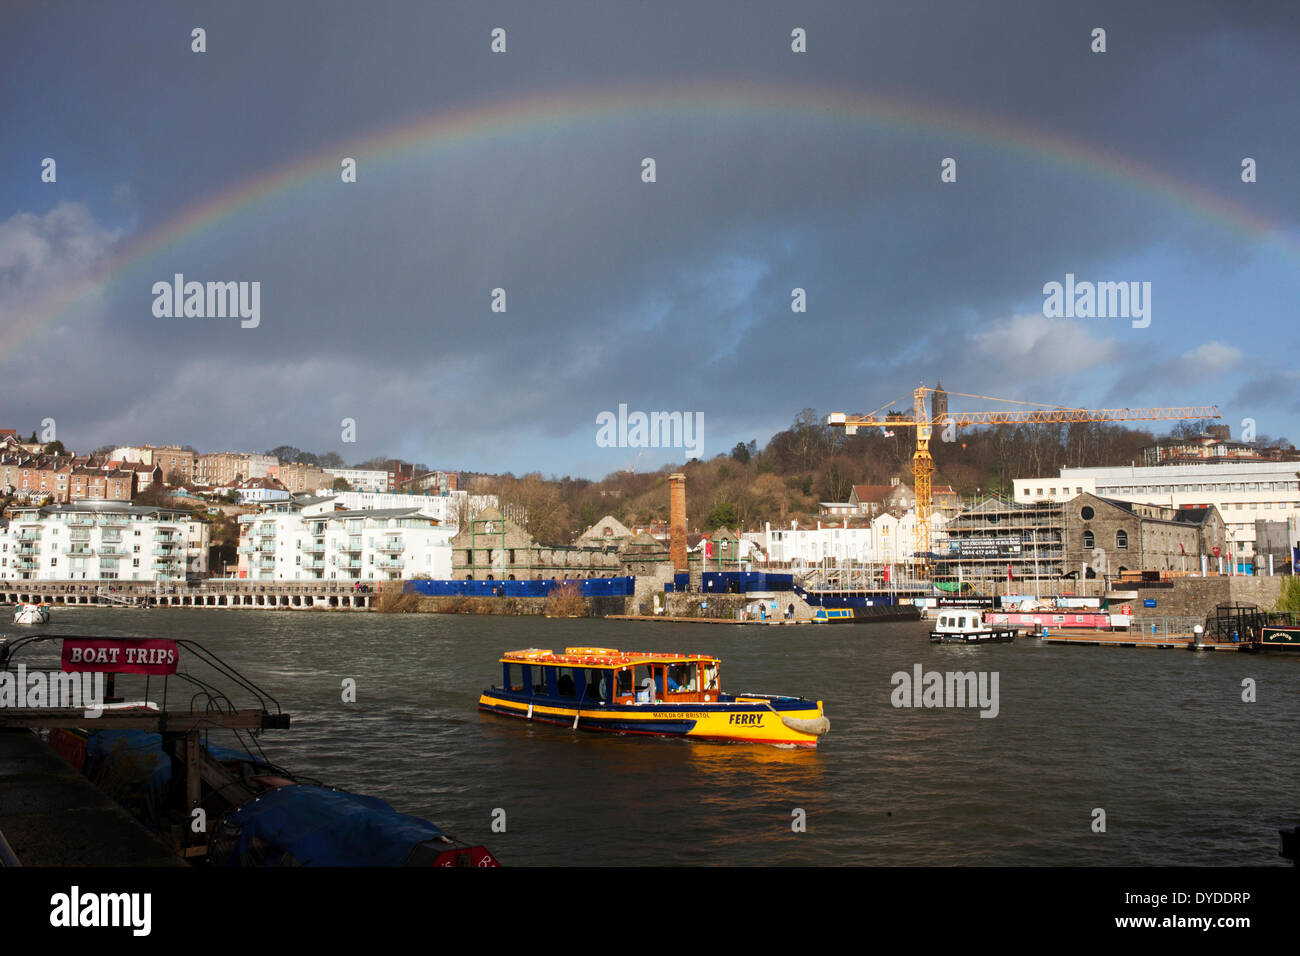 Ferry boat in Harbourside. - Stock Image